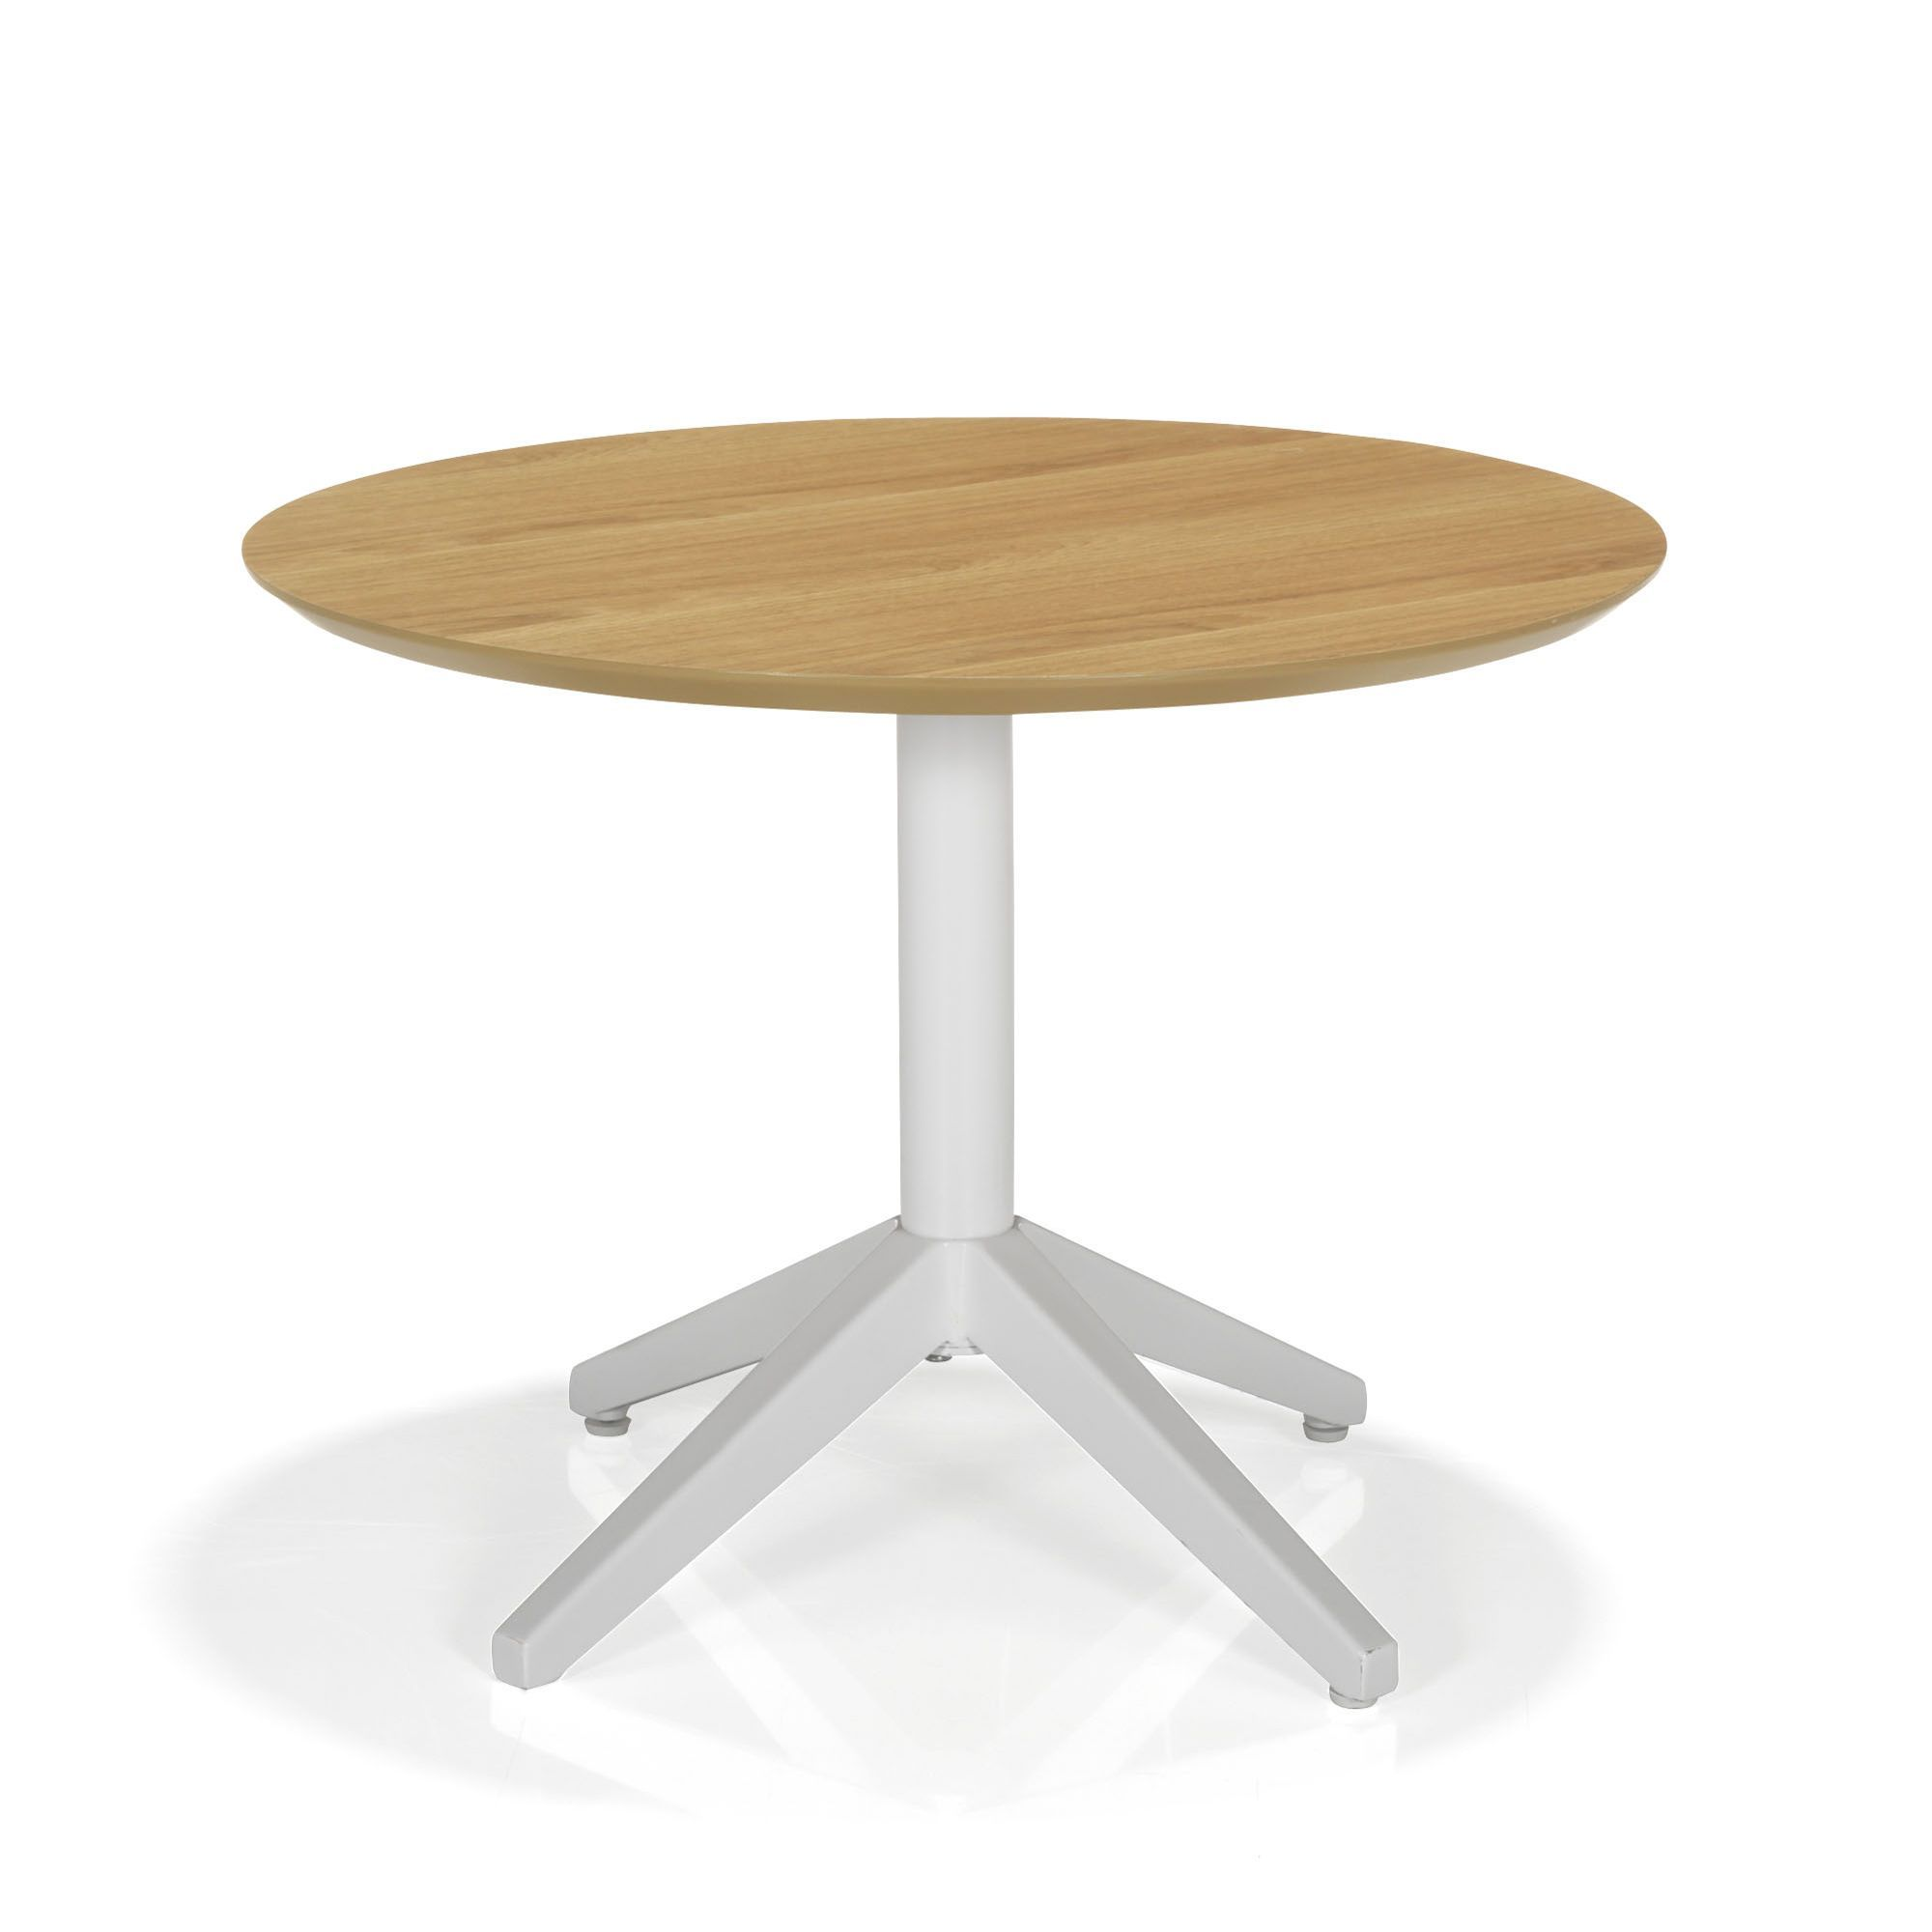 Table basse Imitation chªne blanc Thanis Les tables basses